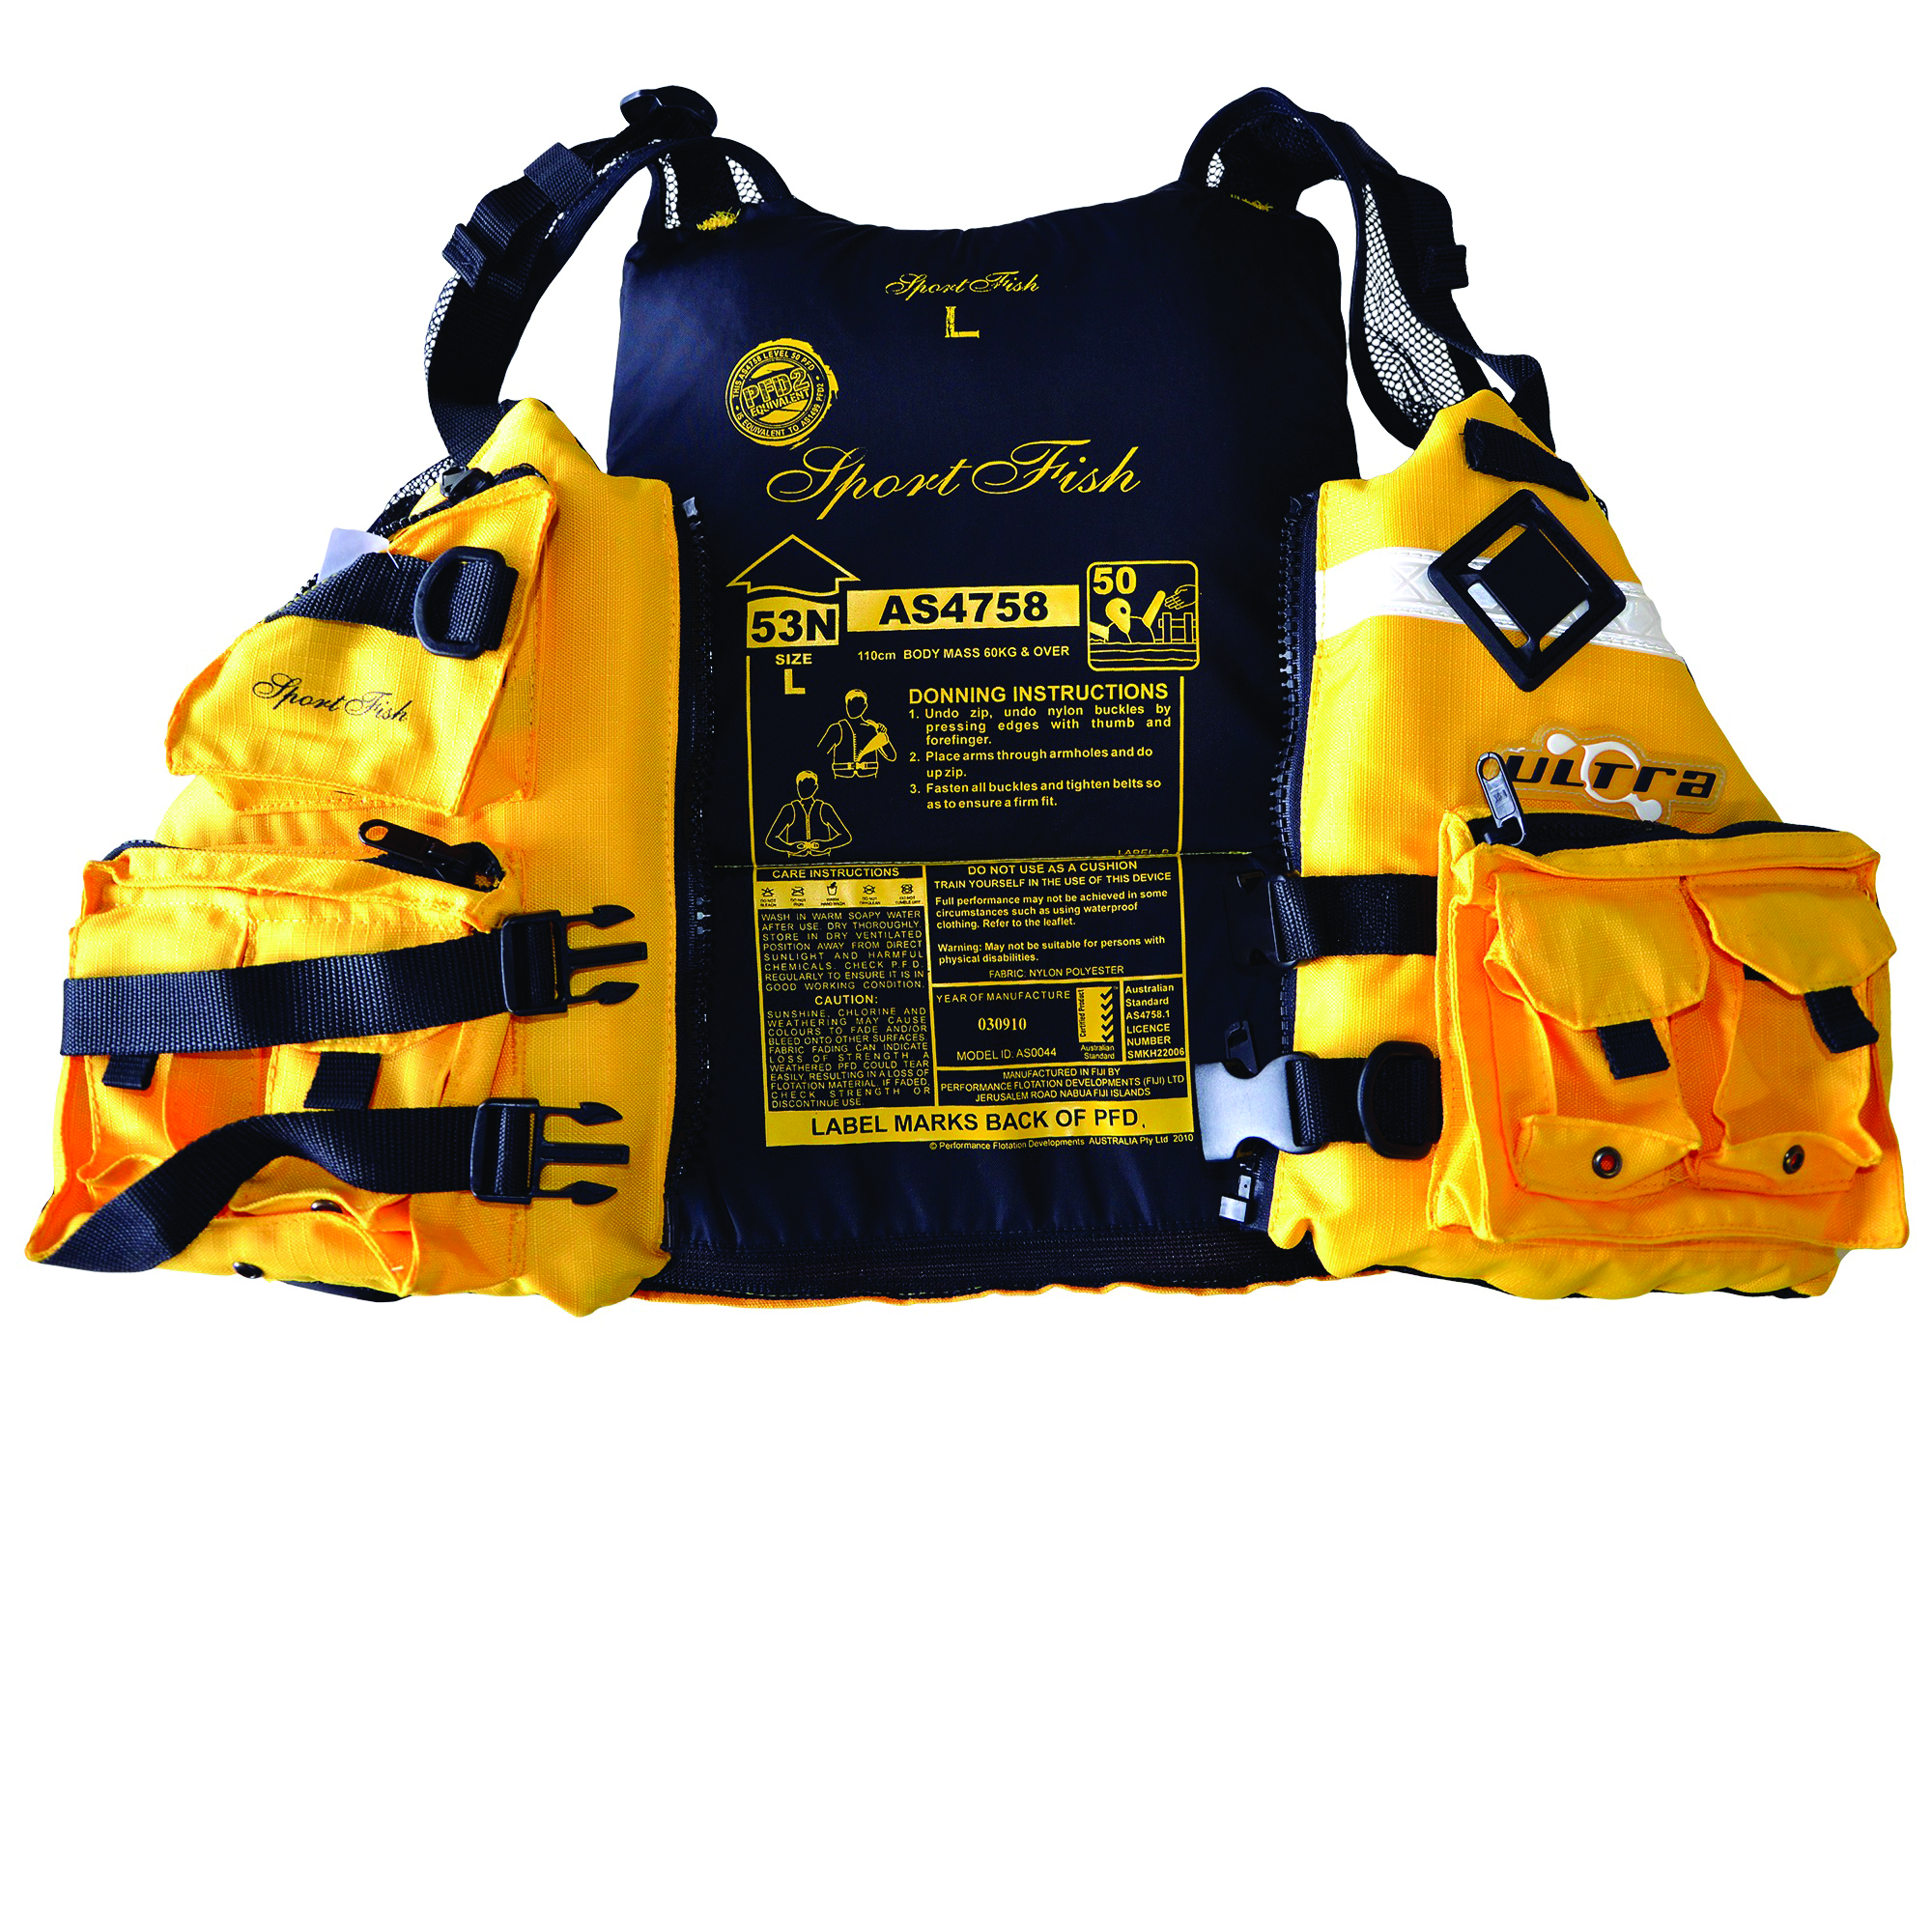 An AS4758 approved PFD with donning instructions is highly recommended to ensure you comply with regulations.